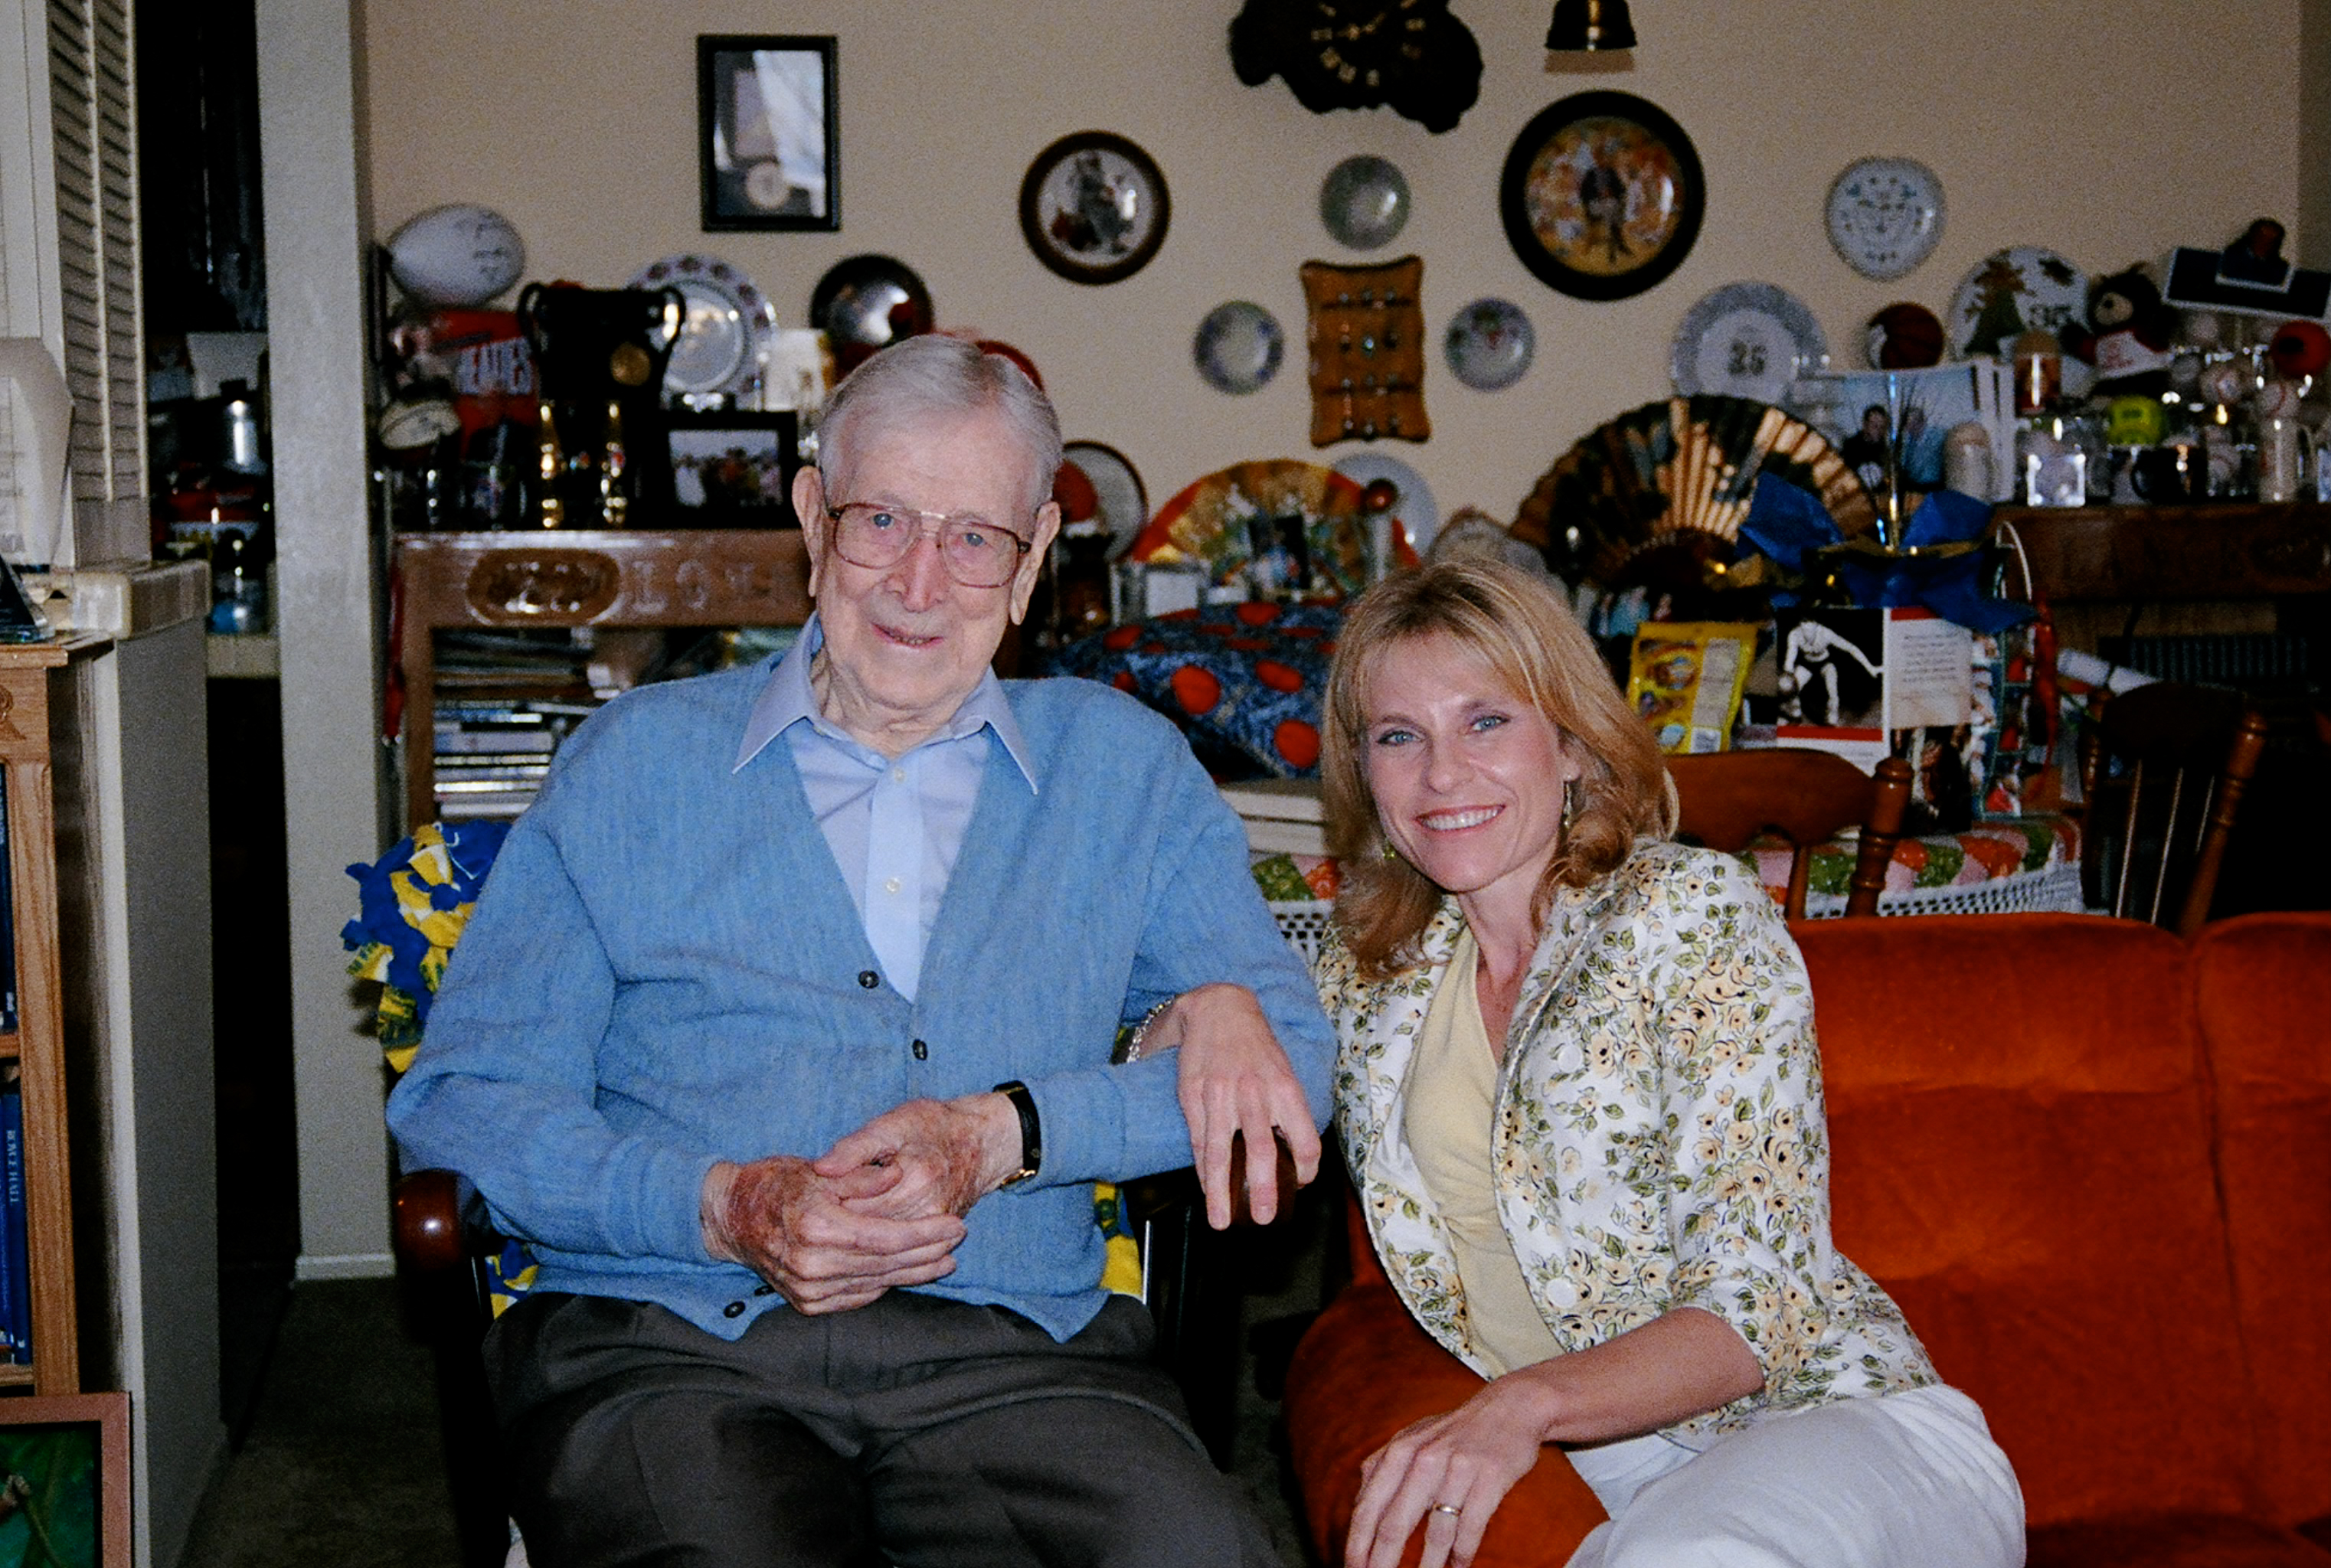 My incredible visit with John Wooden